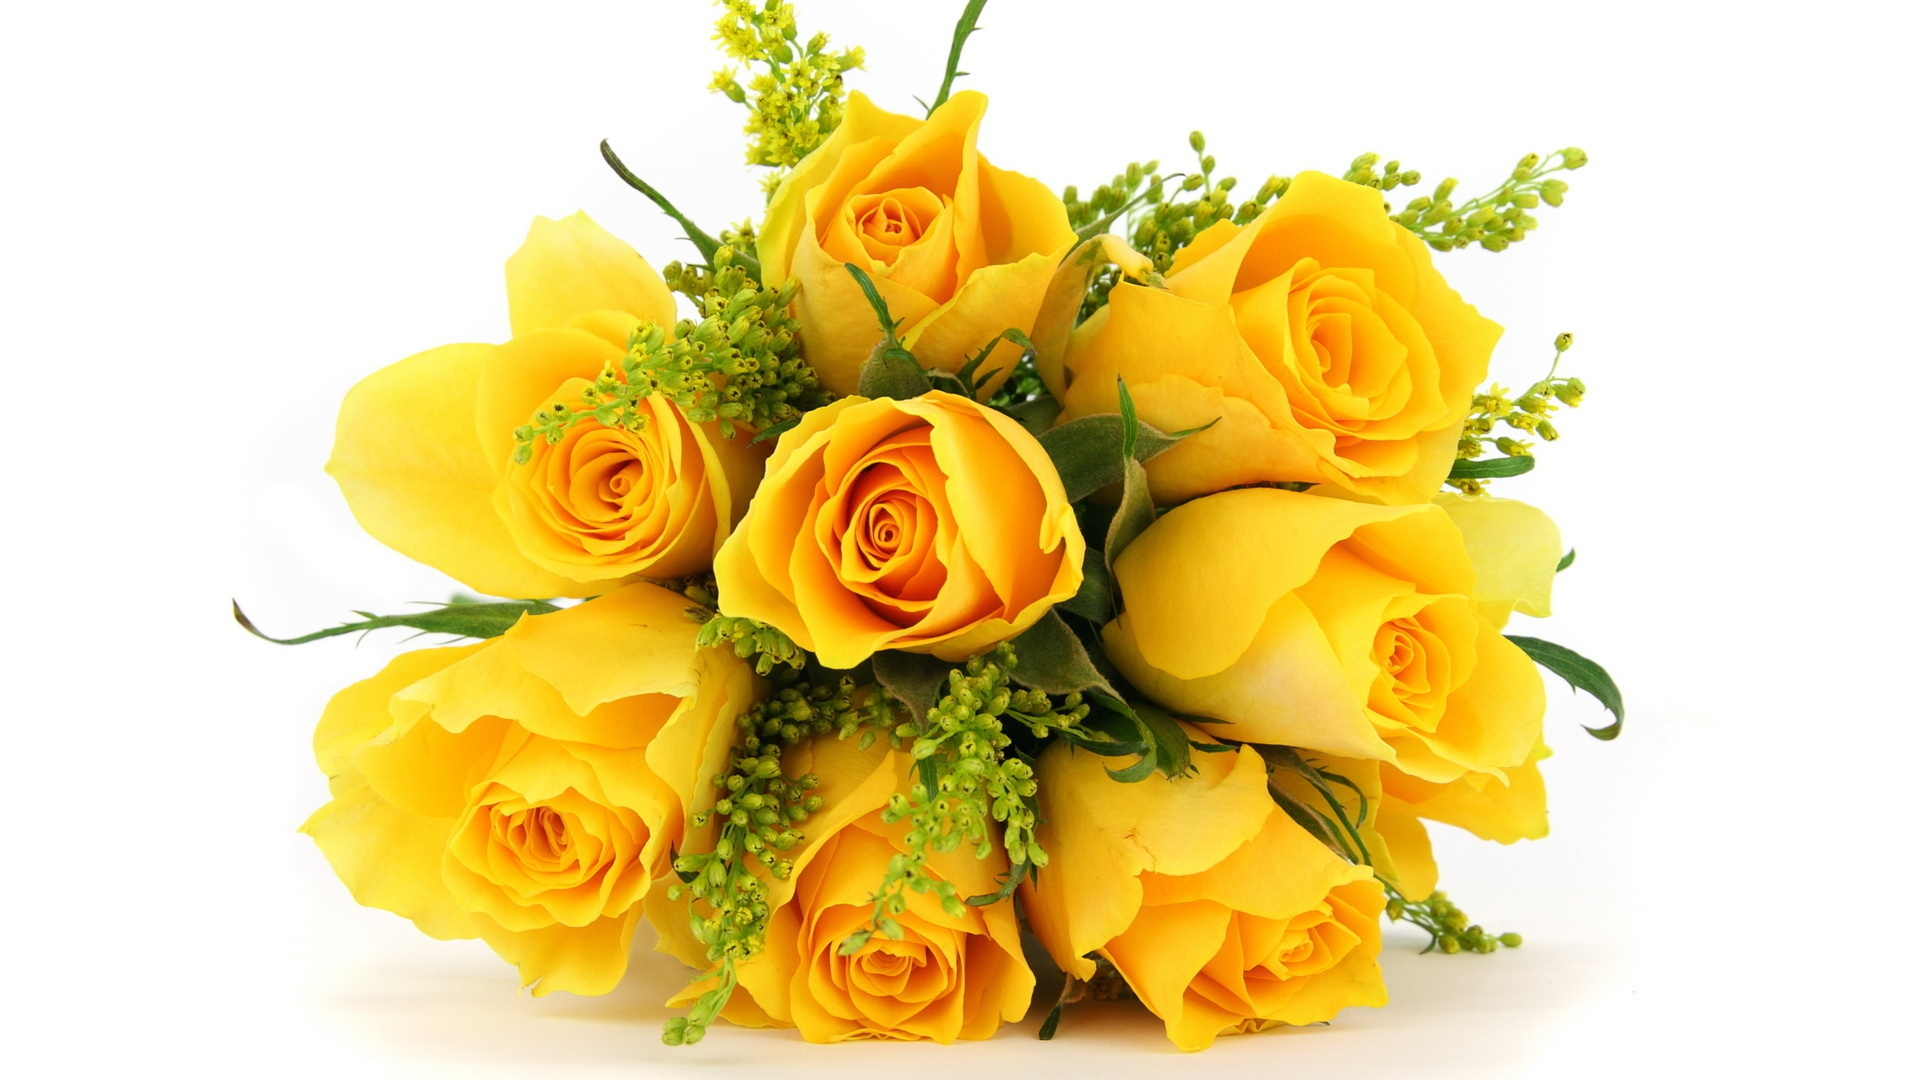 Pictures Of Yellow Rose